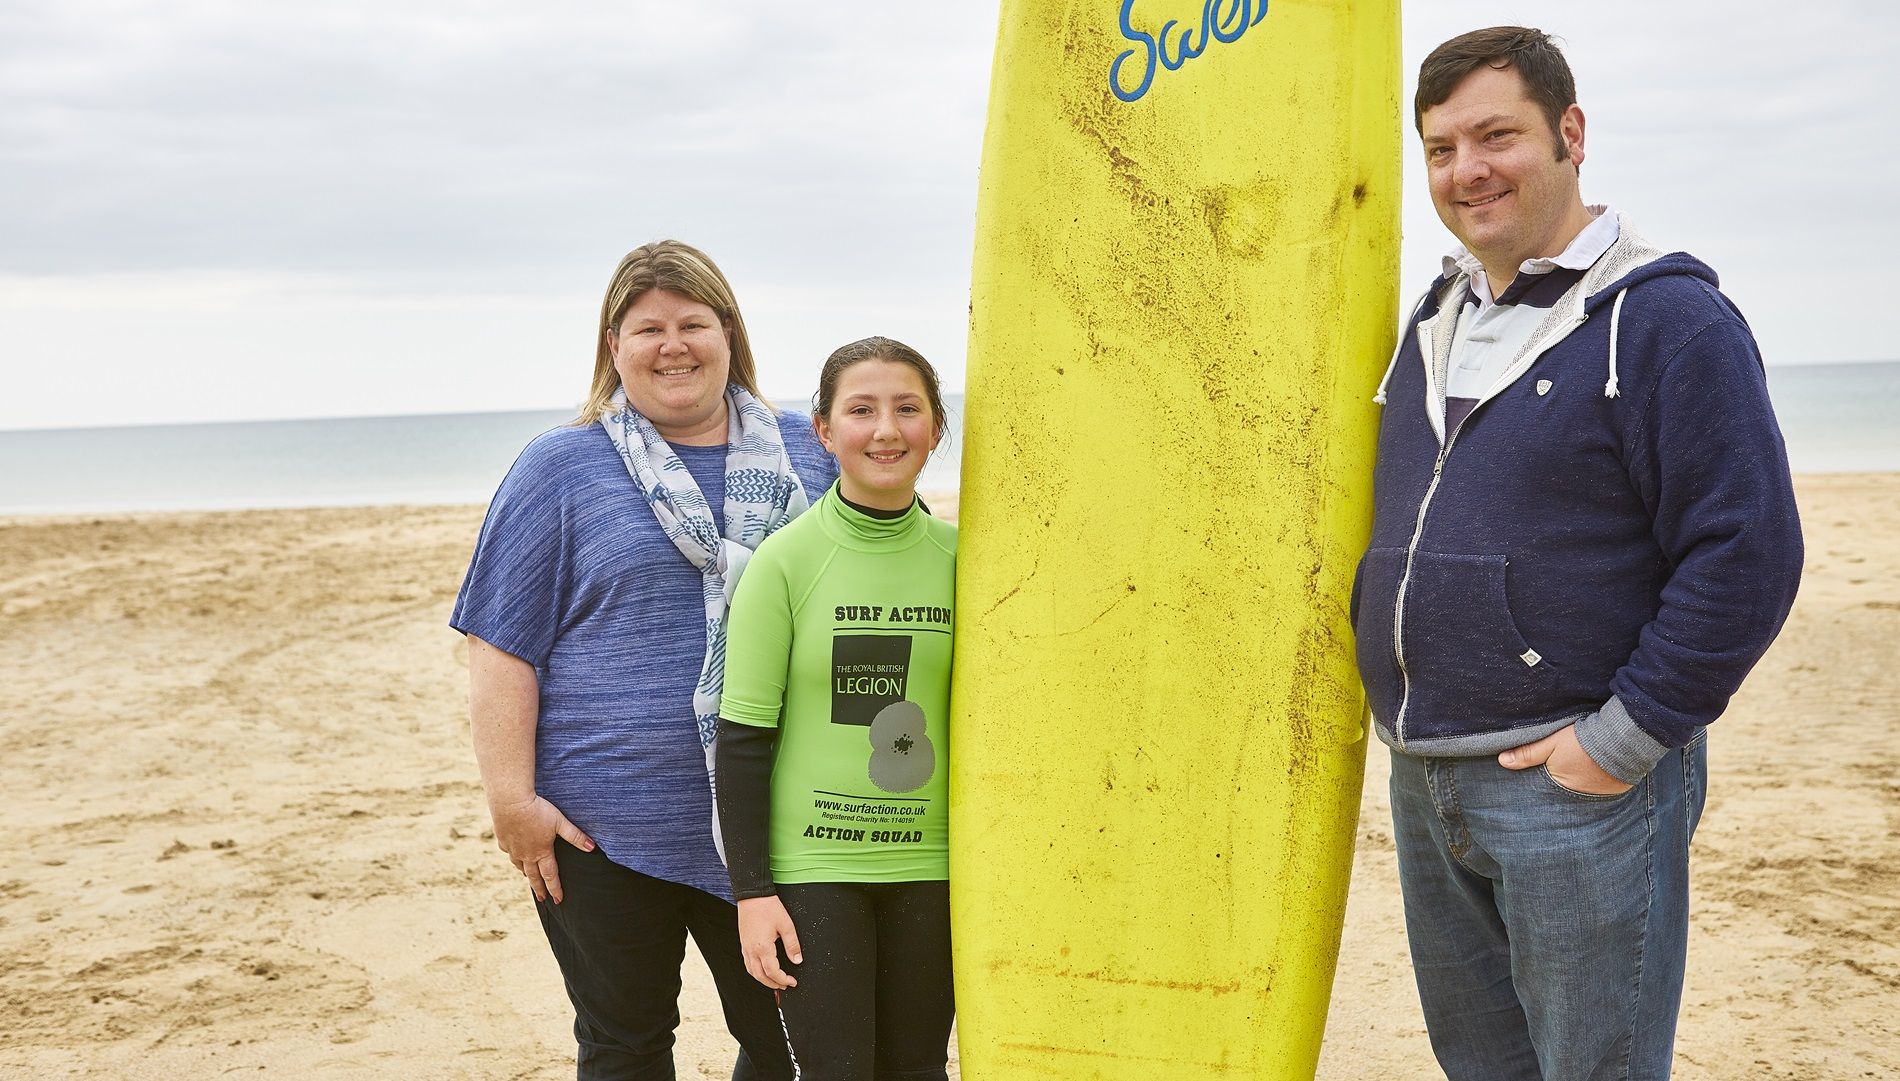 A Service family who took part in a surf lesson with Surf Action